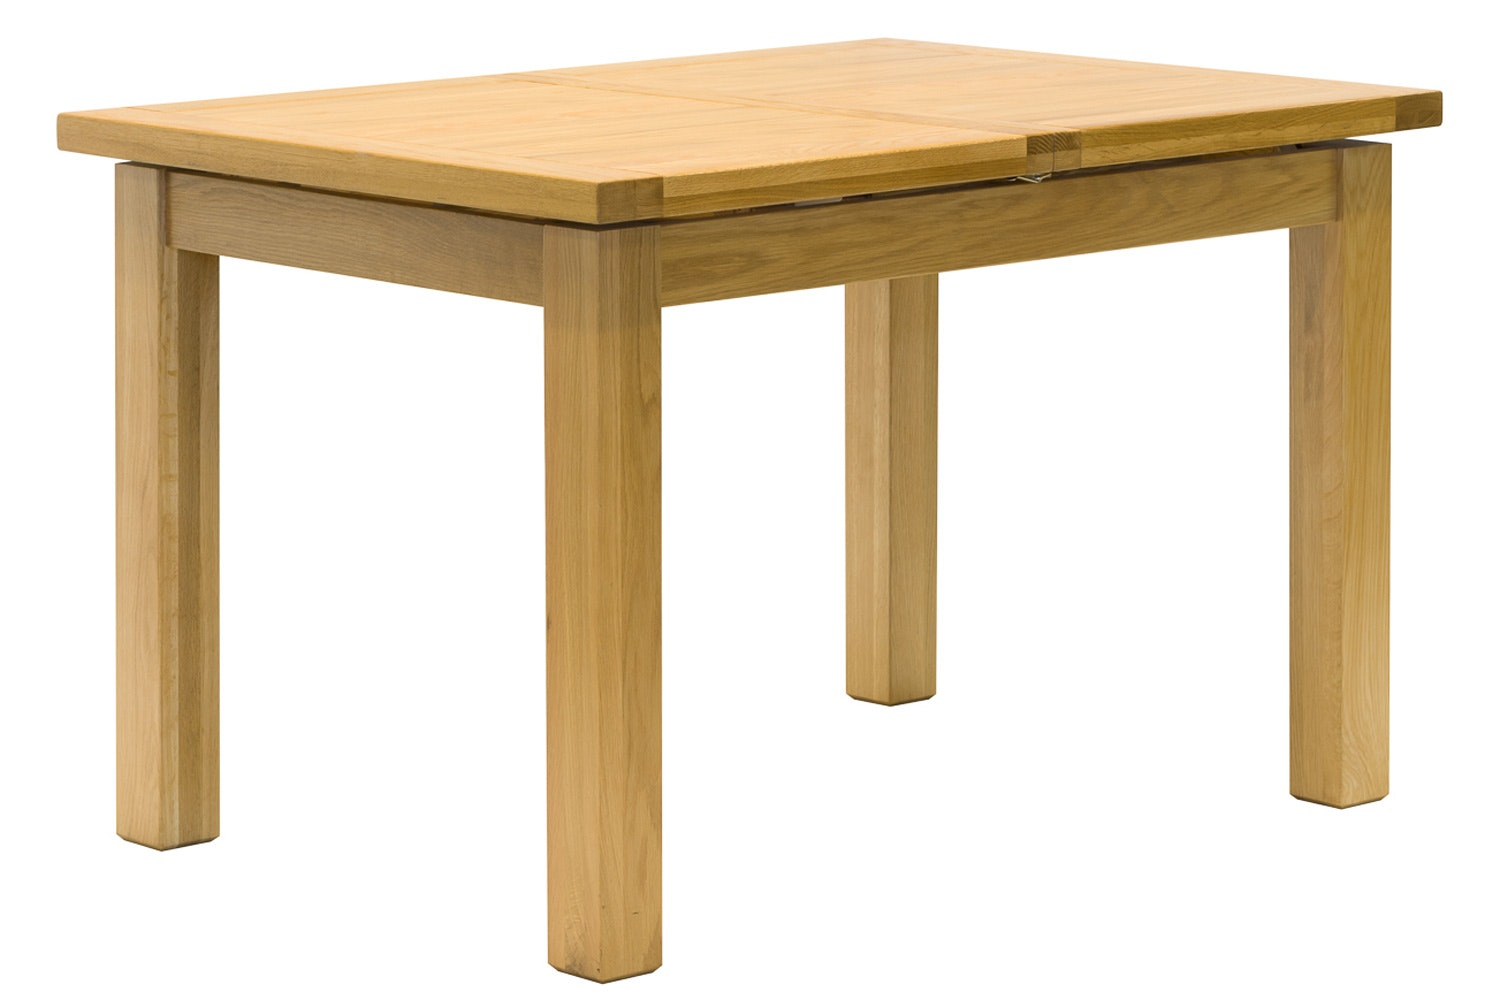 Crean dining table angle